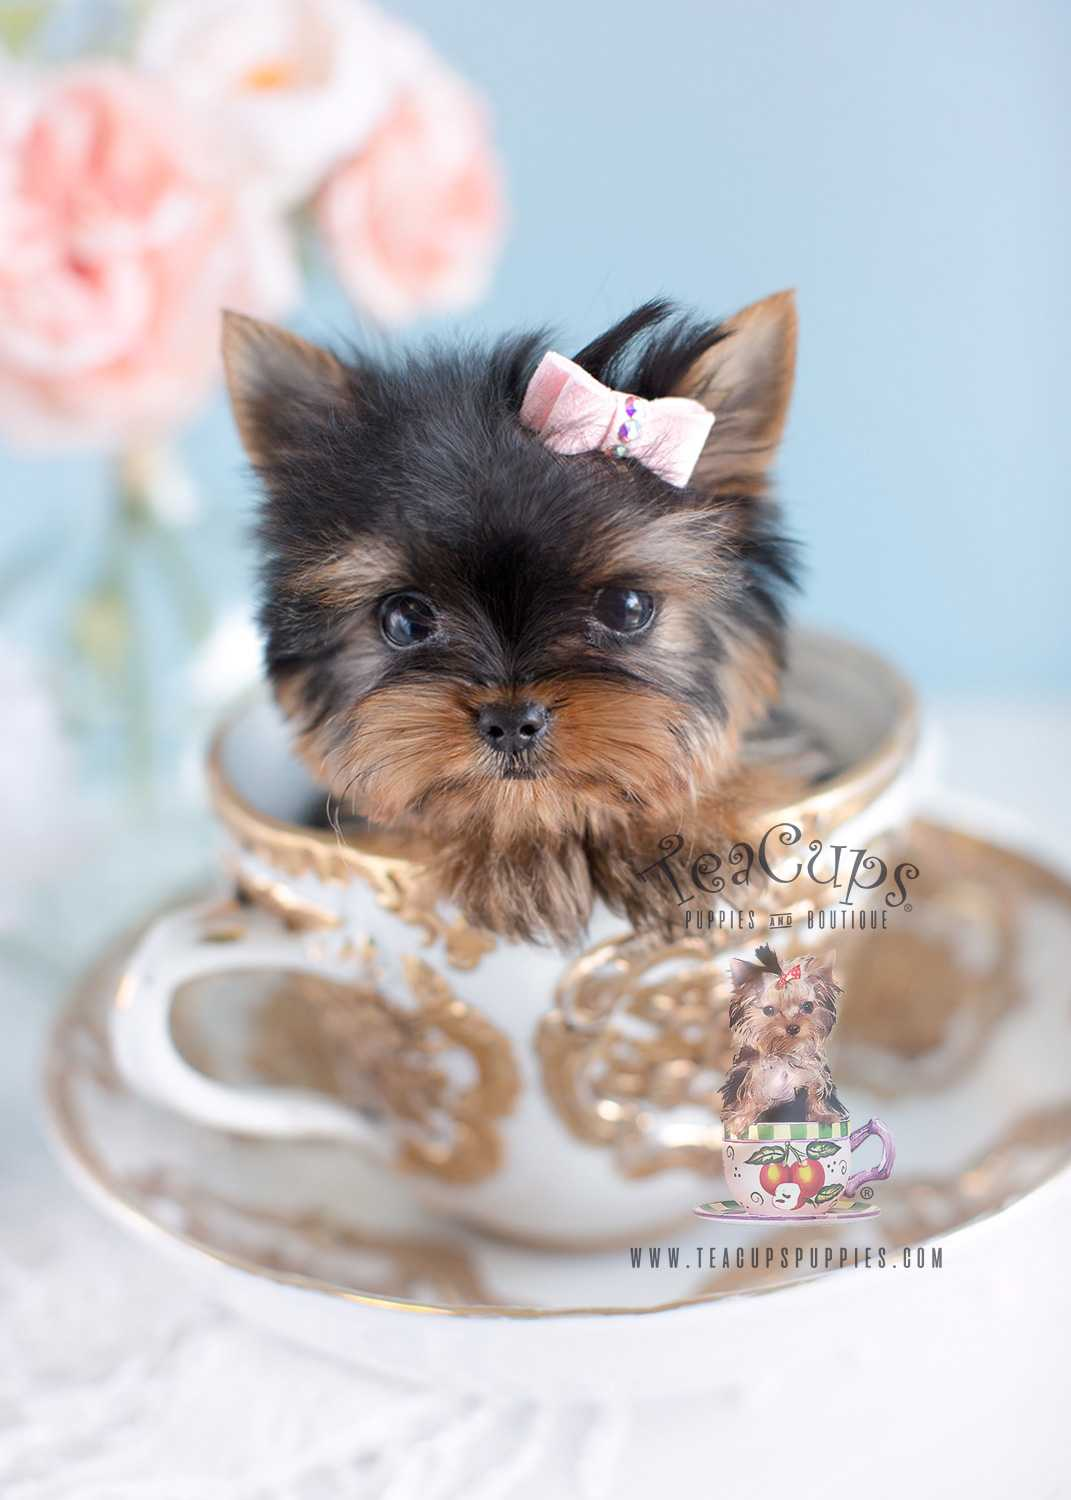 Yorkie Puppy Wallpaper Posted By Samantha Cunningham